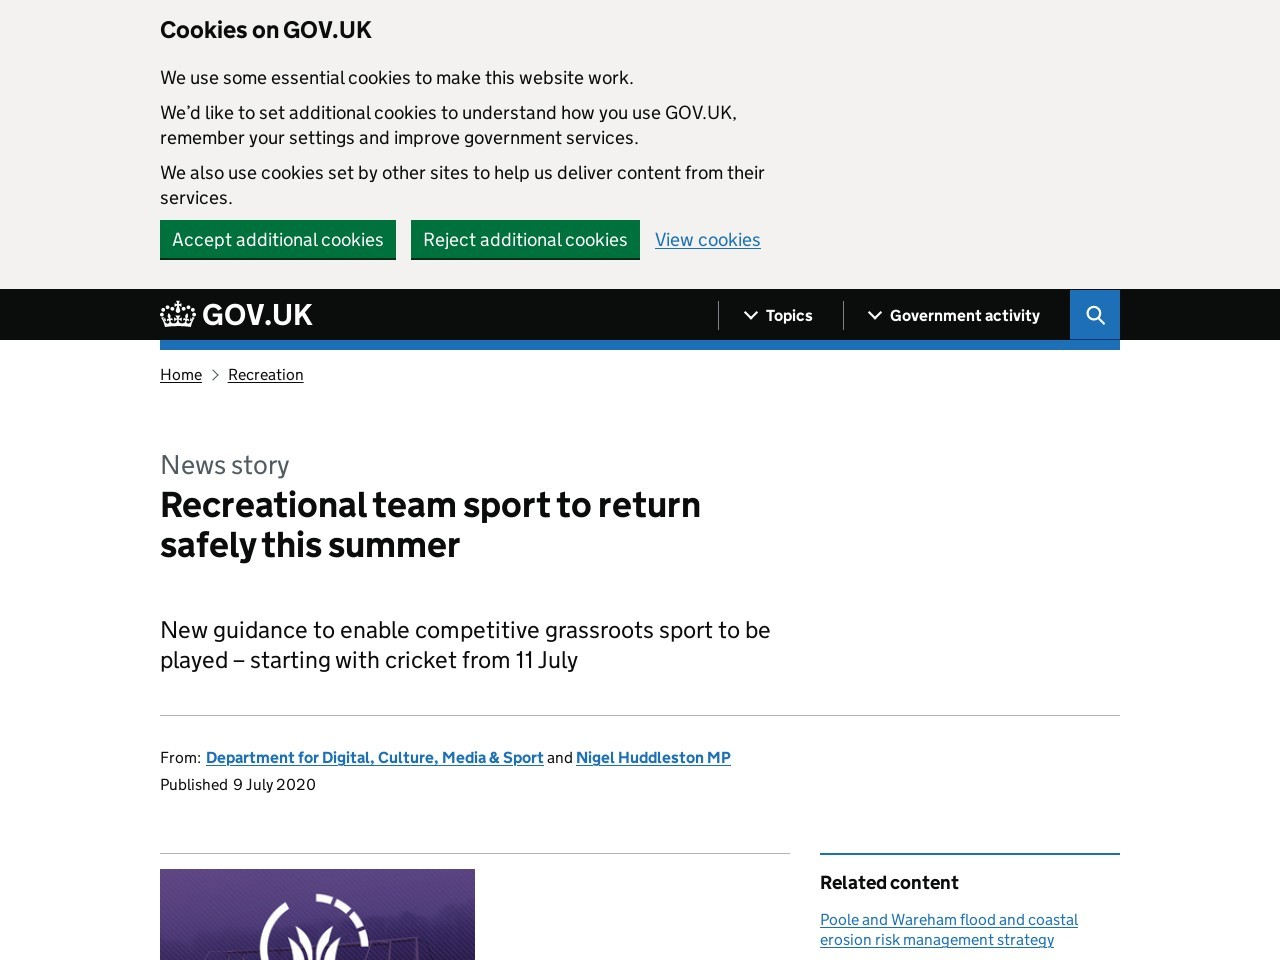 Recreational team sport to return safely this summer